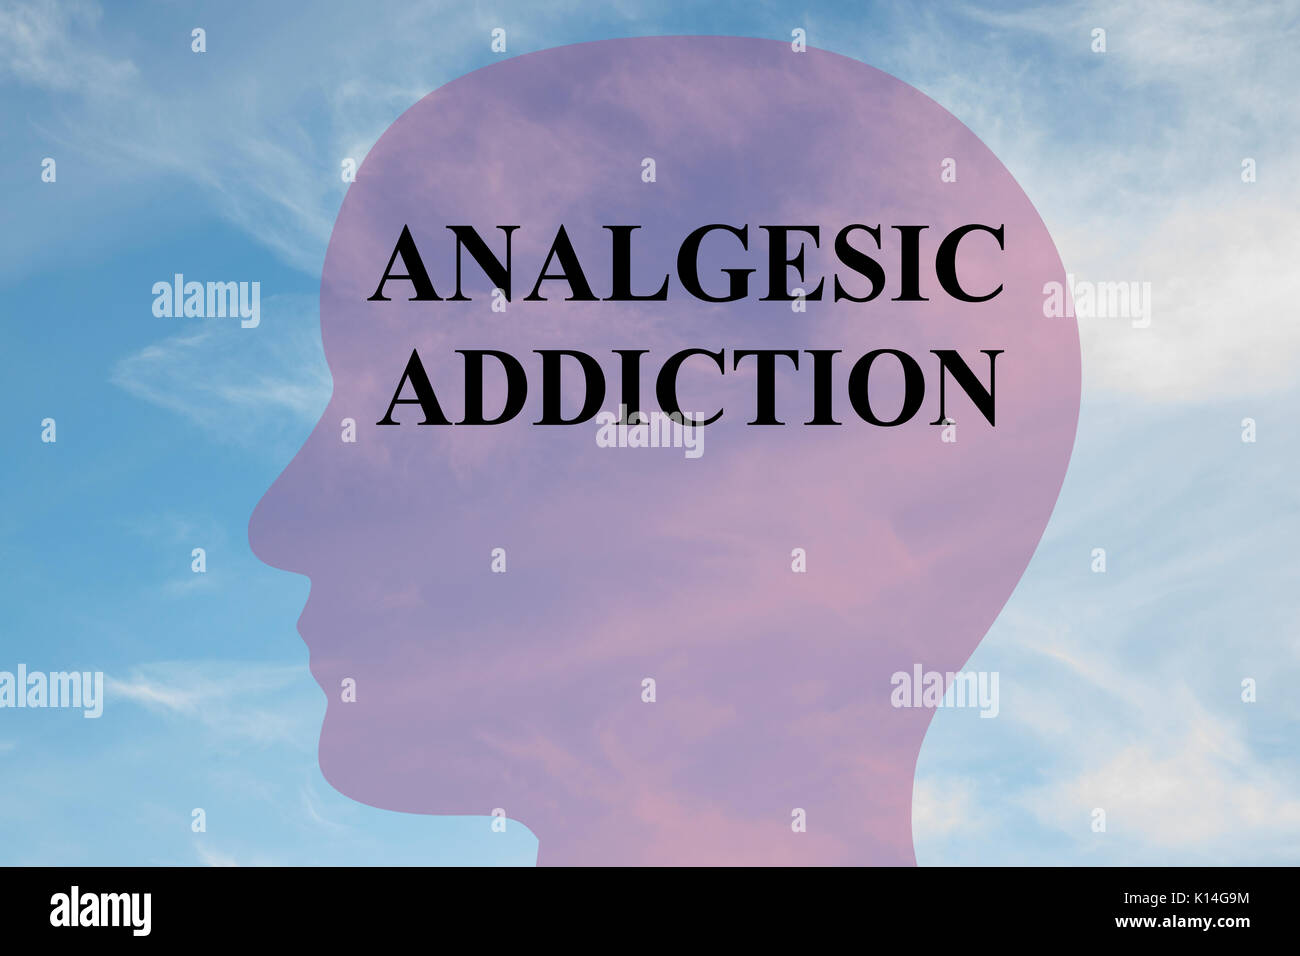 Render illustration of 'ANALGESIC ADDICTION' title on head silhouette, with cloudy sky as a background. - Stock Image